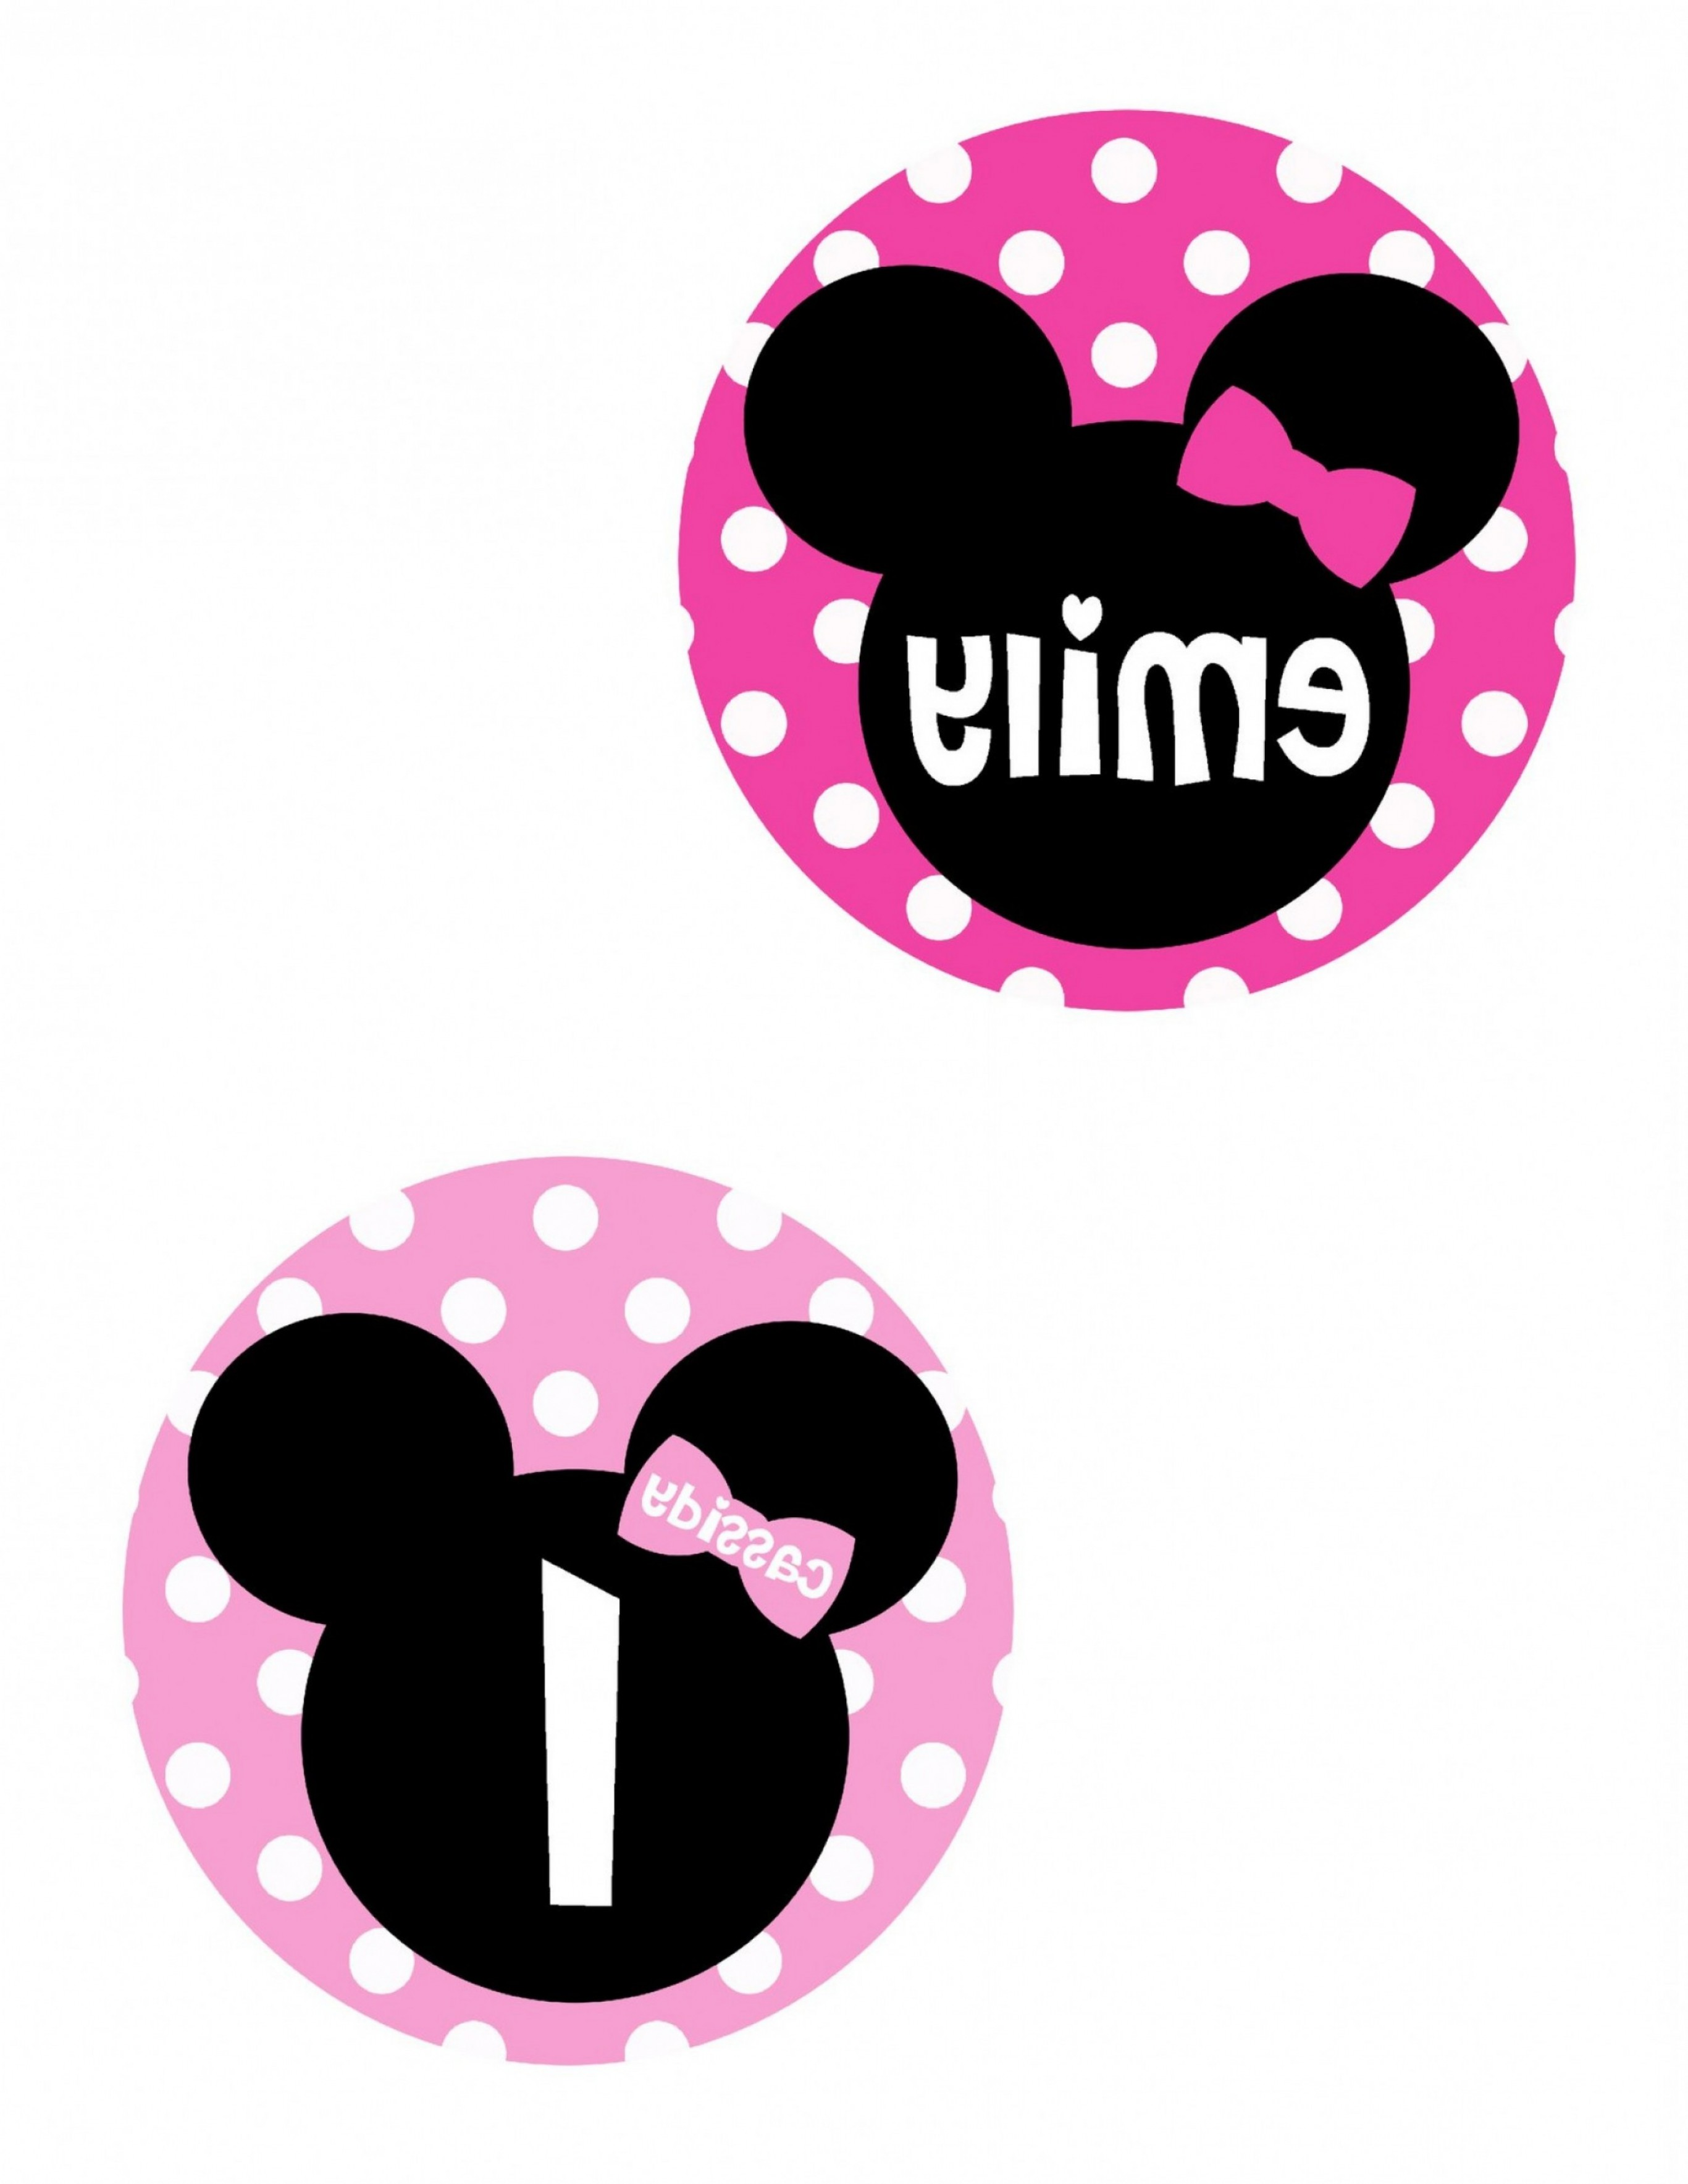 Minnie Mouse Head Vector: Mickey Mouse Face Clipart Kisspng Minnie Clip Art Head Silhouette Vector Aadedeca Free Turtle